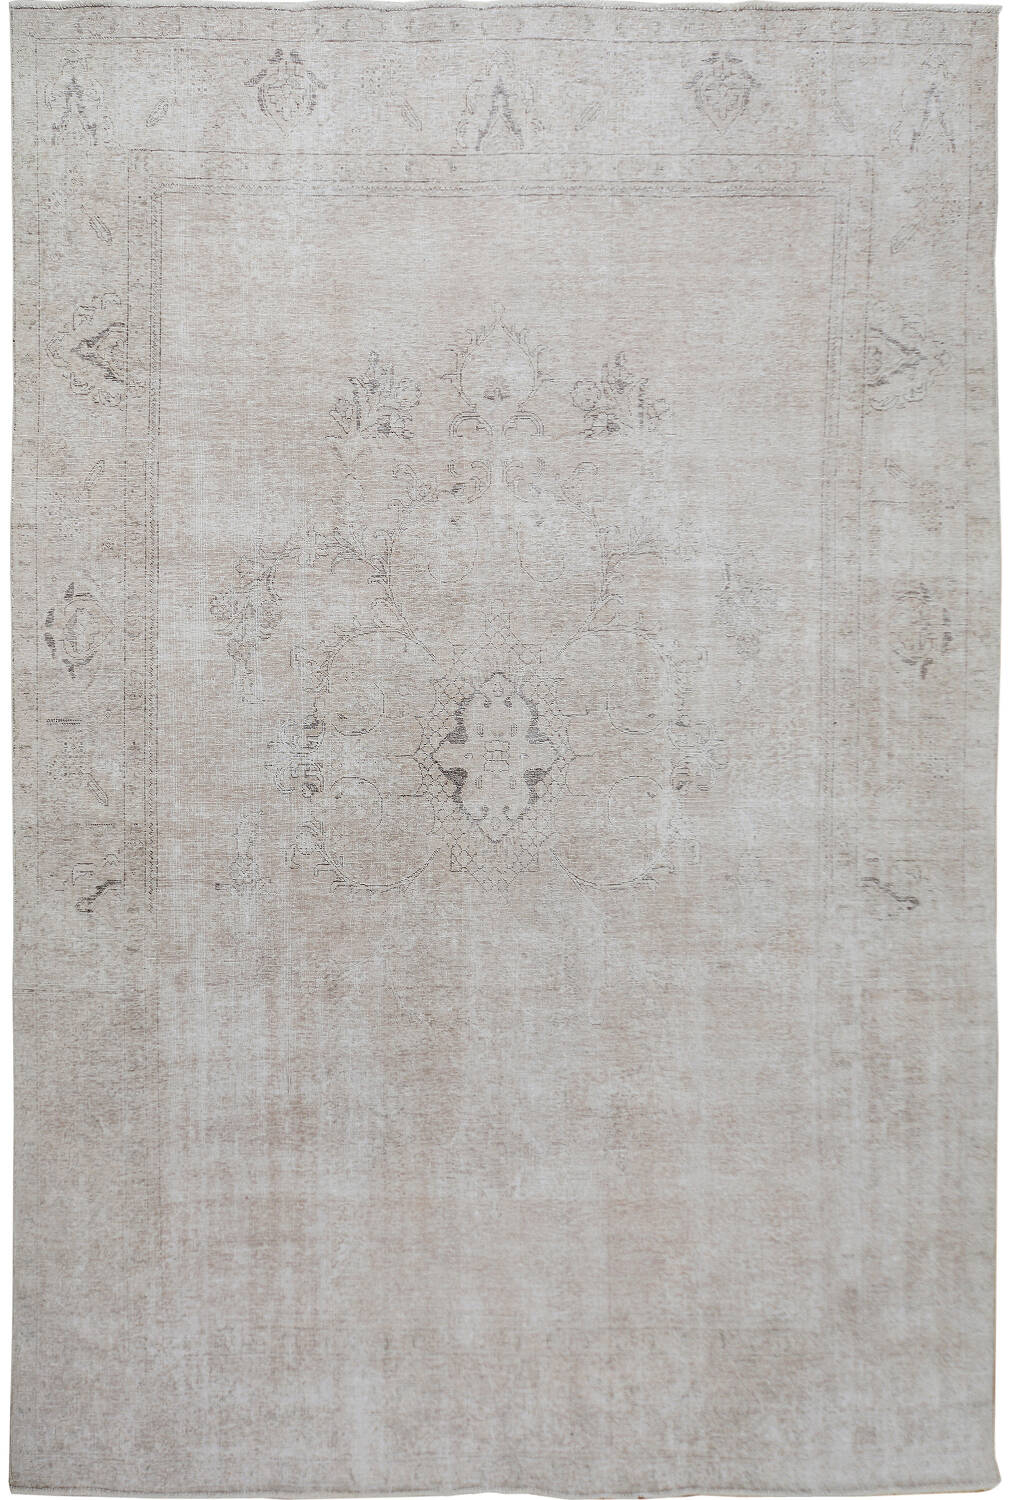 Antique Floral Muted Tabriz Persian Distressed Area Rug 9x12 image 1